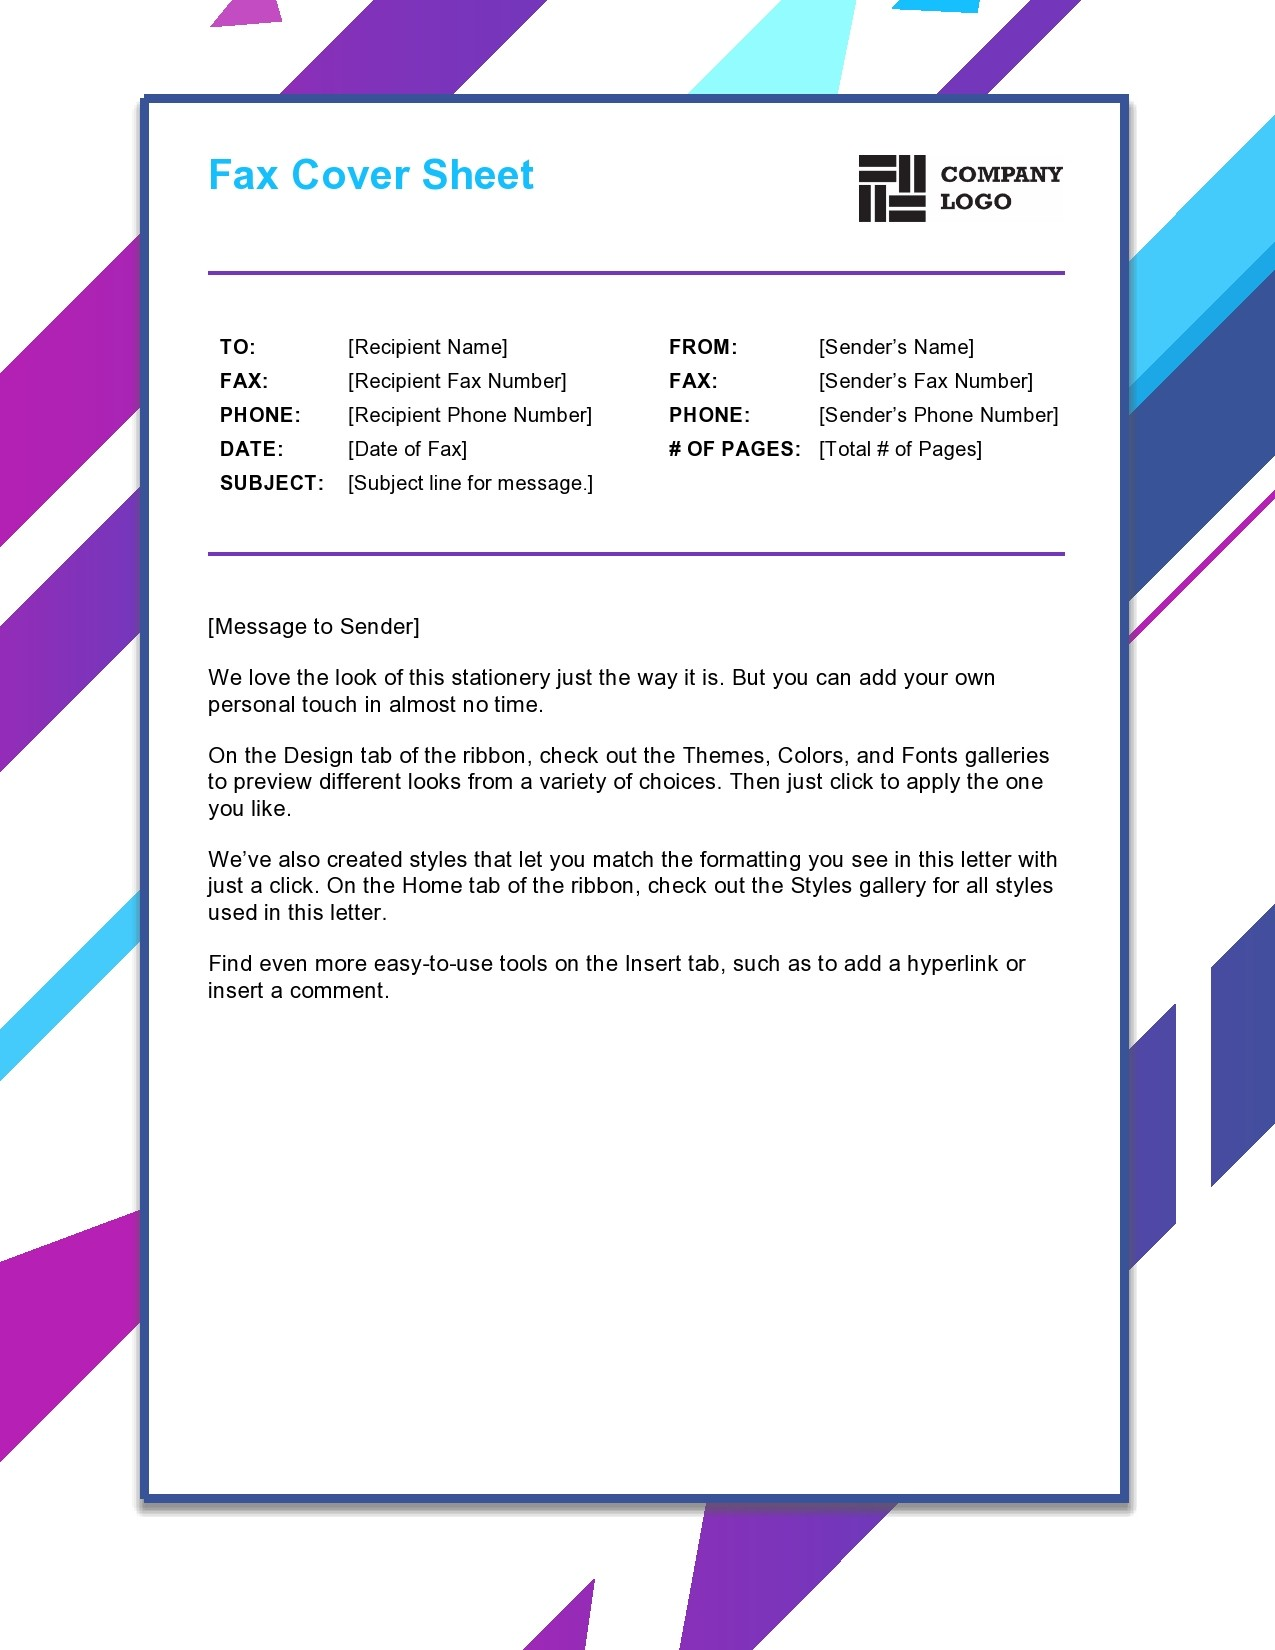 free fax cover sheet 41